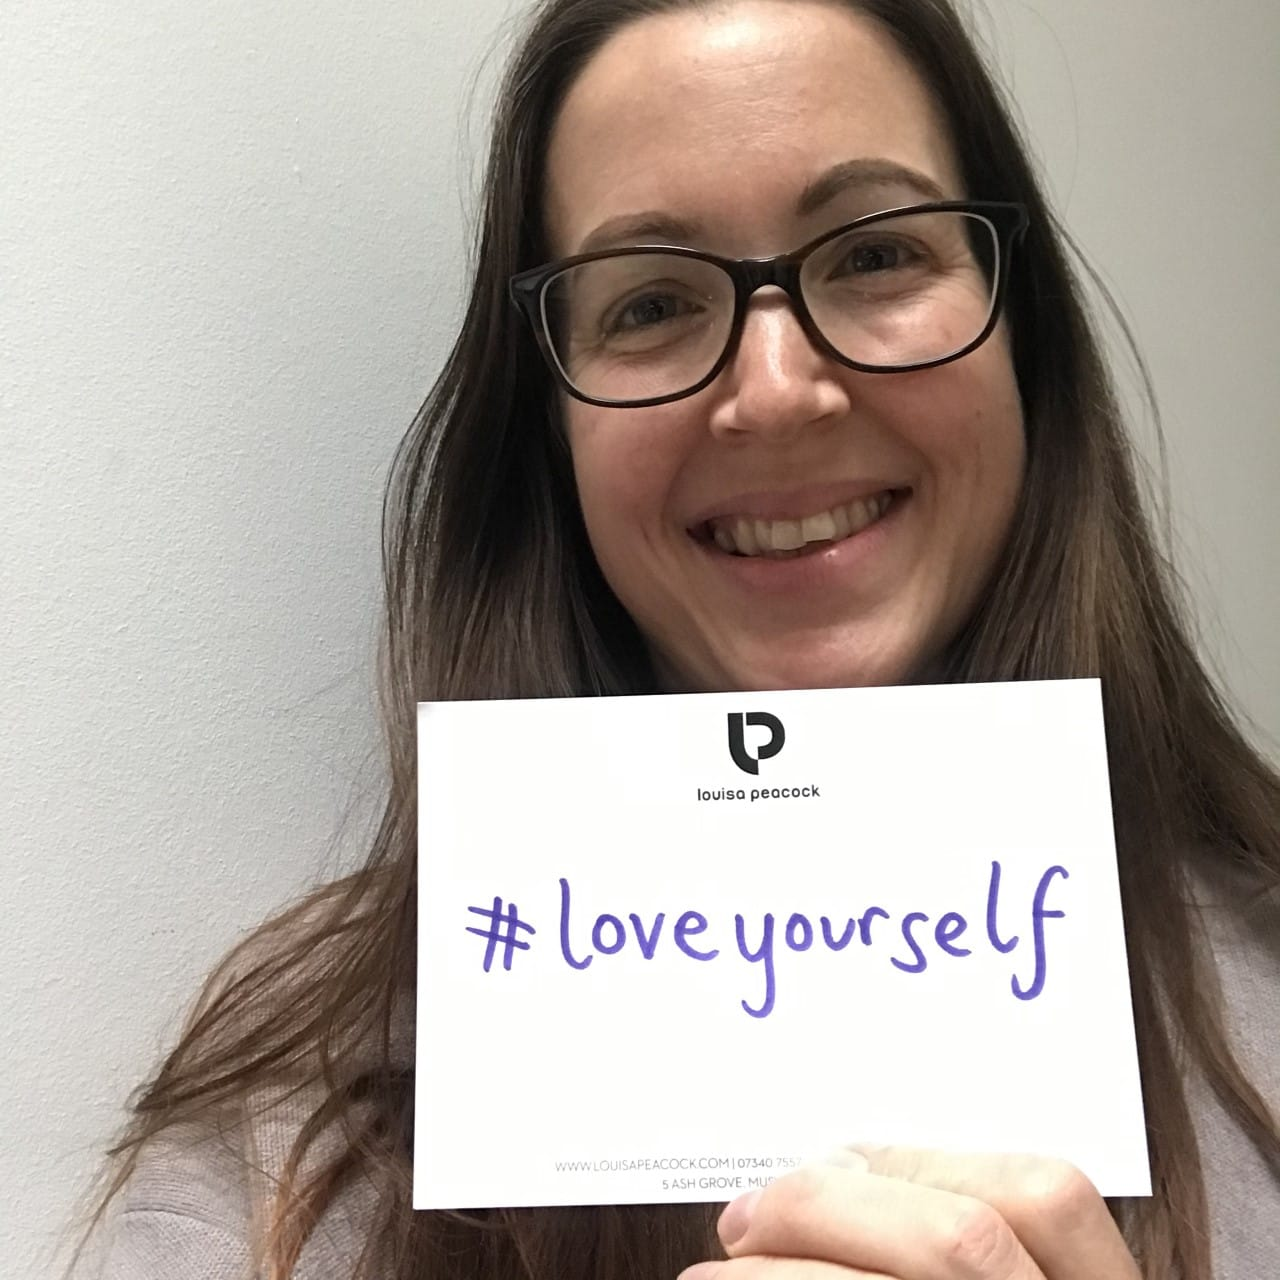 Louisa Peacock starts the #loveyourself hashtag challenge